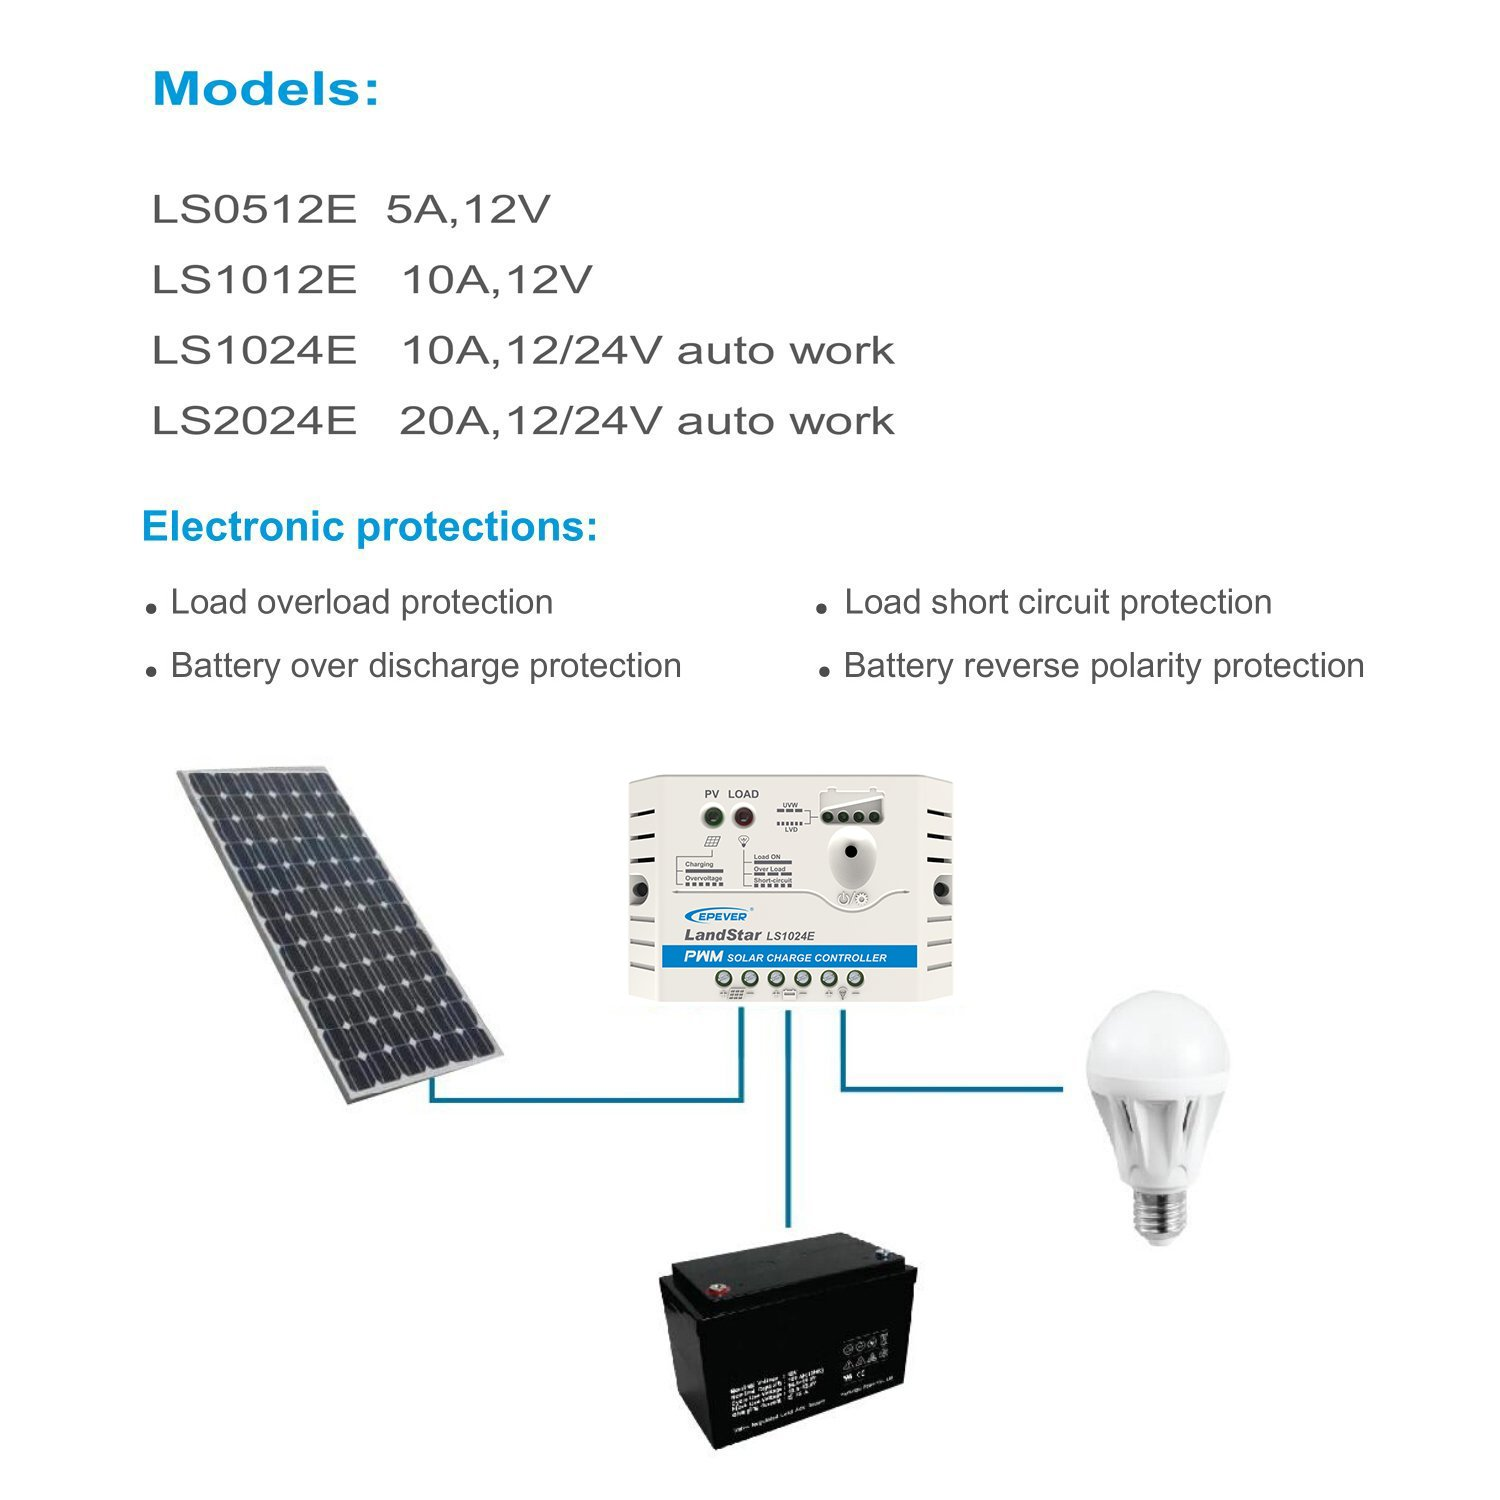 Epever Solar Charge Controller 10a 12v 24v Auto Work Simple Reversepolarityprotection Circuit Has No Voltage Drop Figure Ls1024e Panel Battery Charging Regulator Led Indication For Off Grid Home System